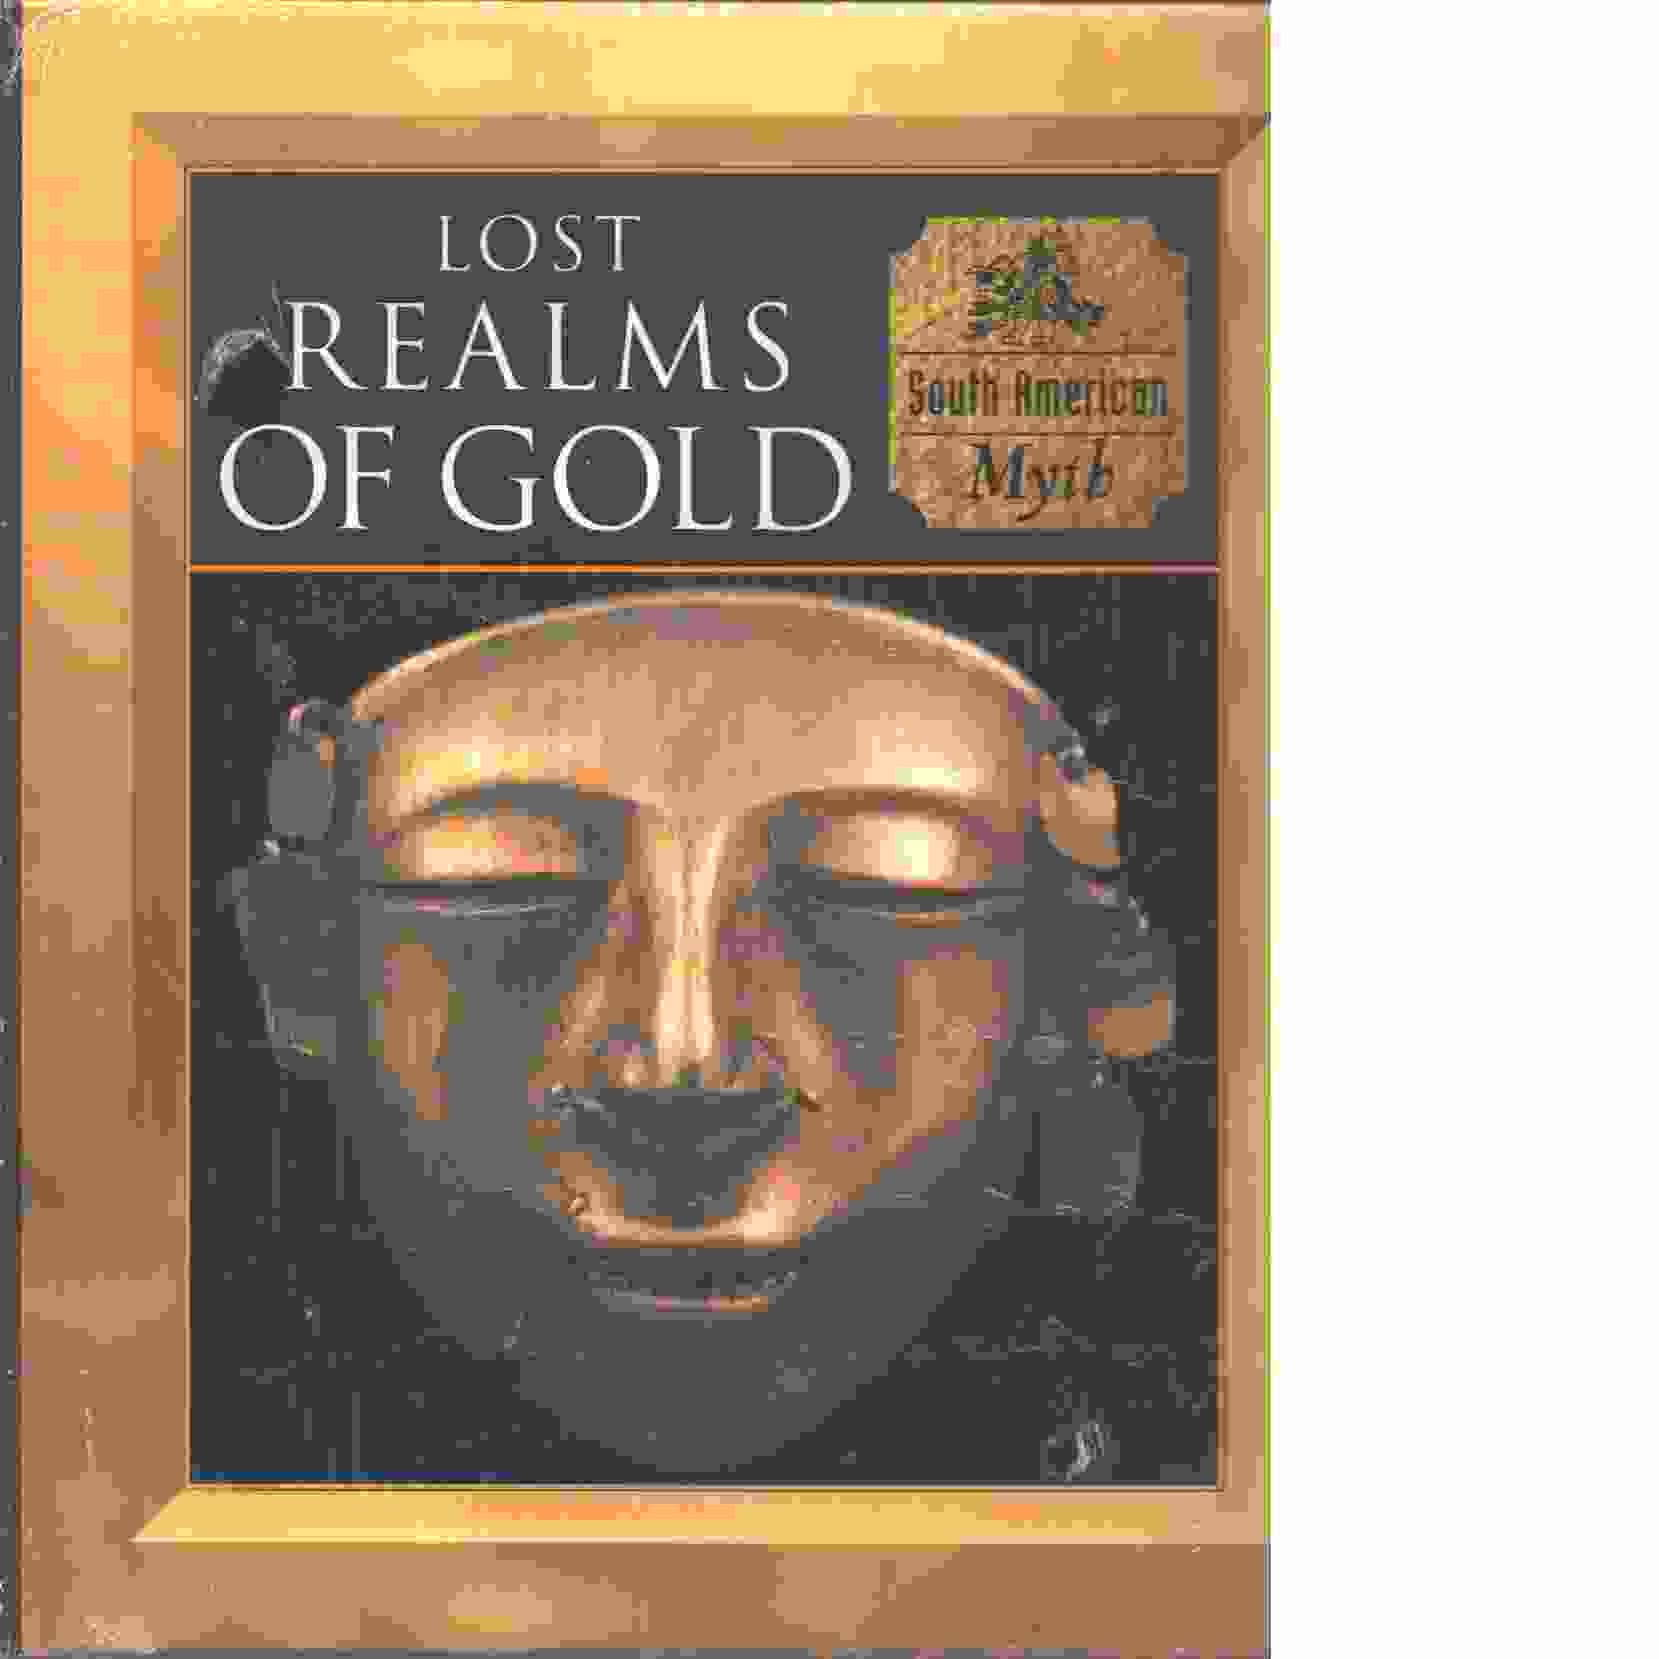 Lost Realms of Gold: South American Myth - Time-Life Books